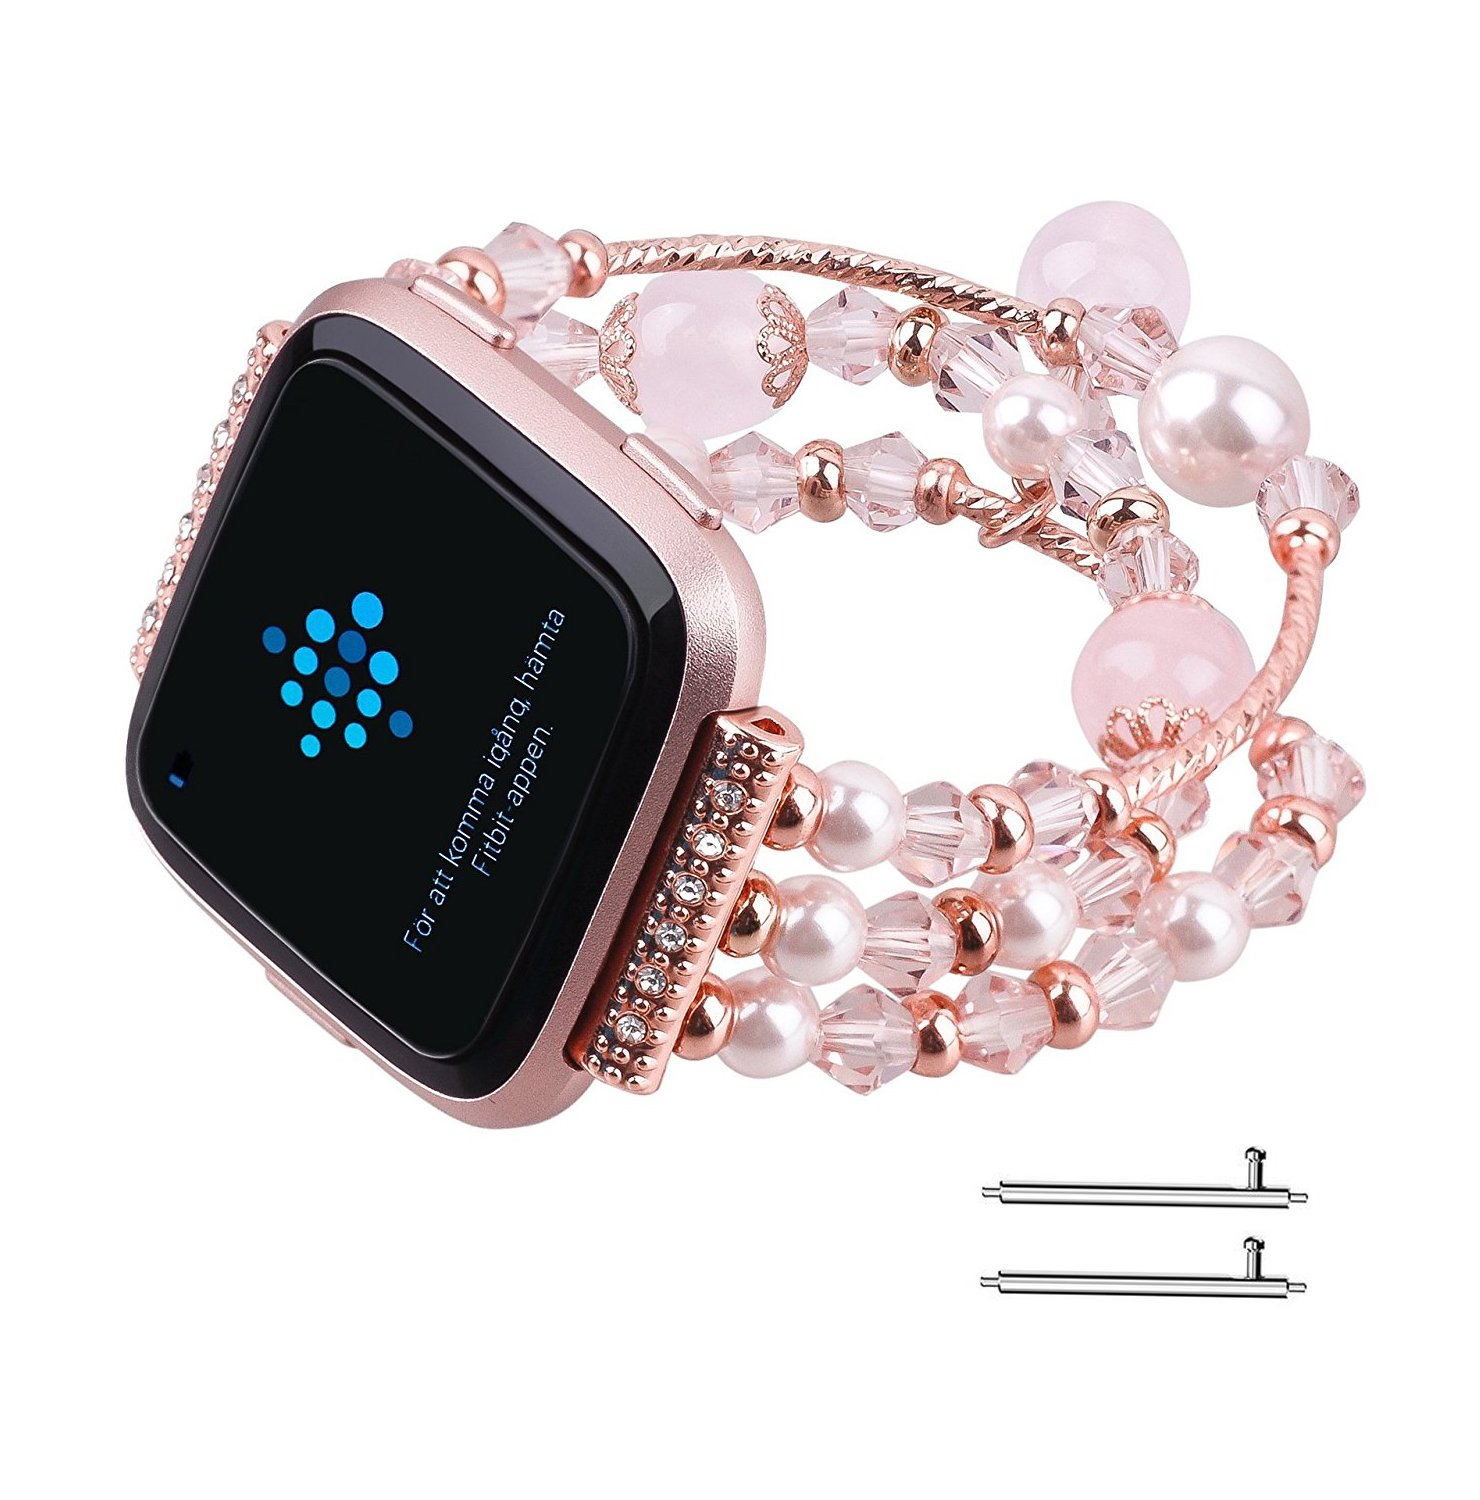 Fitbit Versa Bands, Vintage Fashion Handmade Elastic Stretch Faux Pearl Bracelet Replacement Women Girls Wristband Strap for Fitbit Versa Smartwatch (Pink)